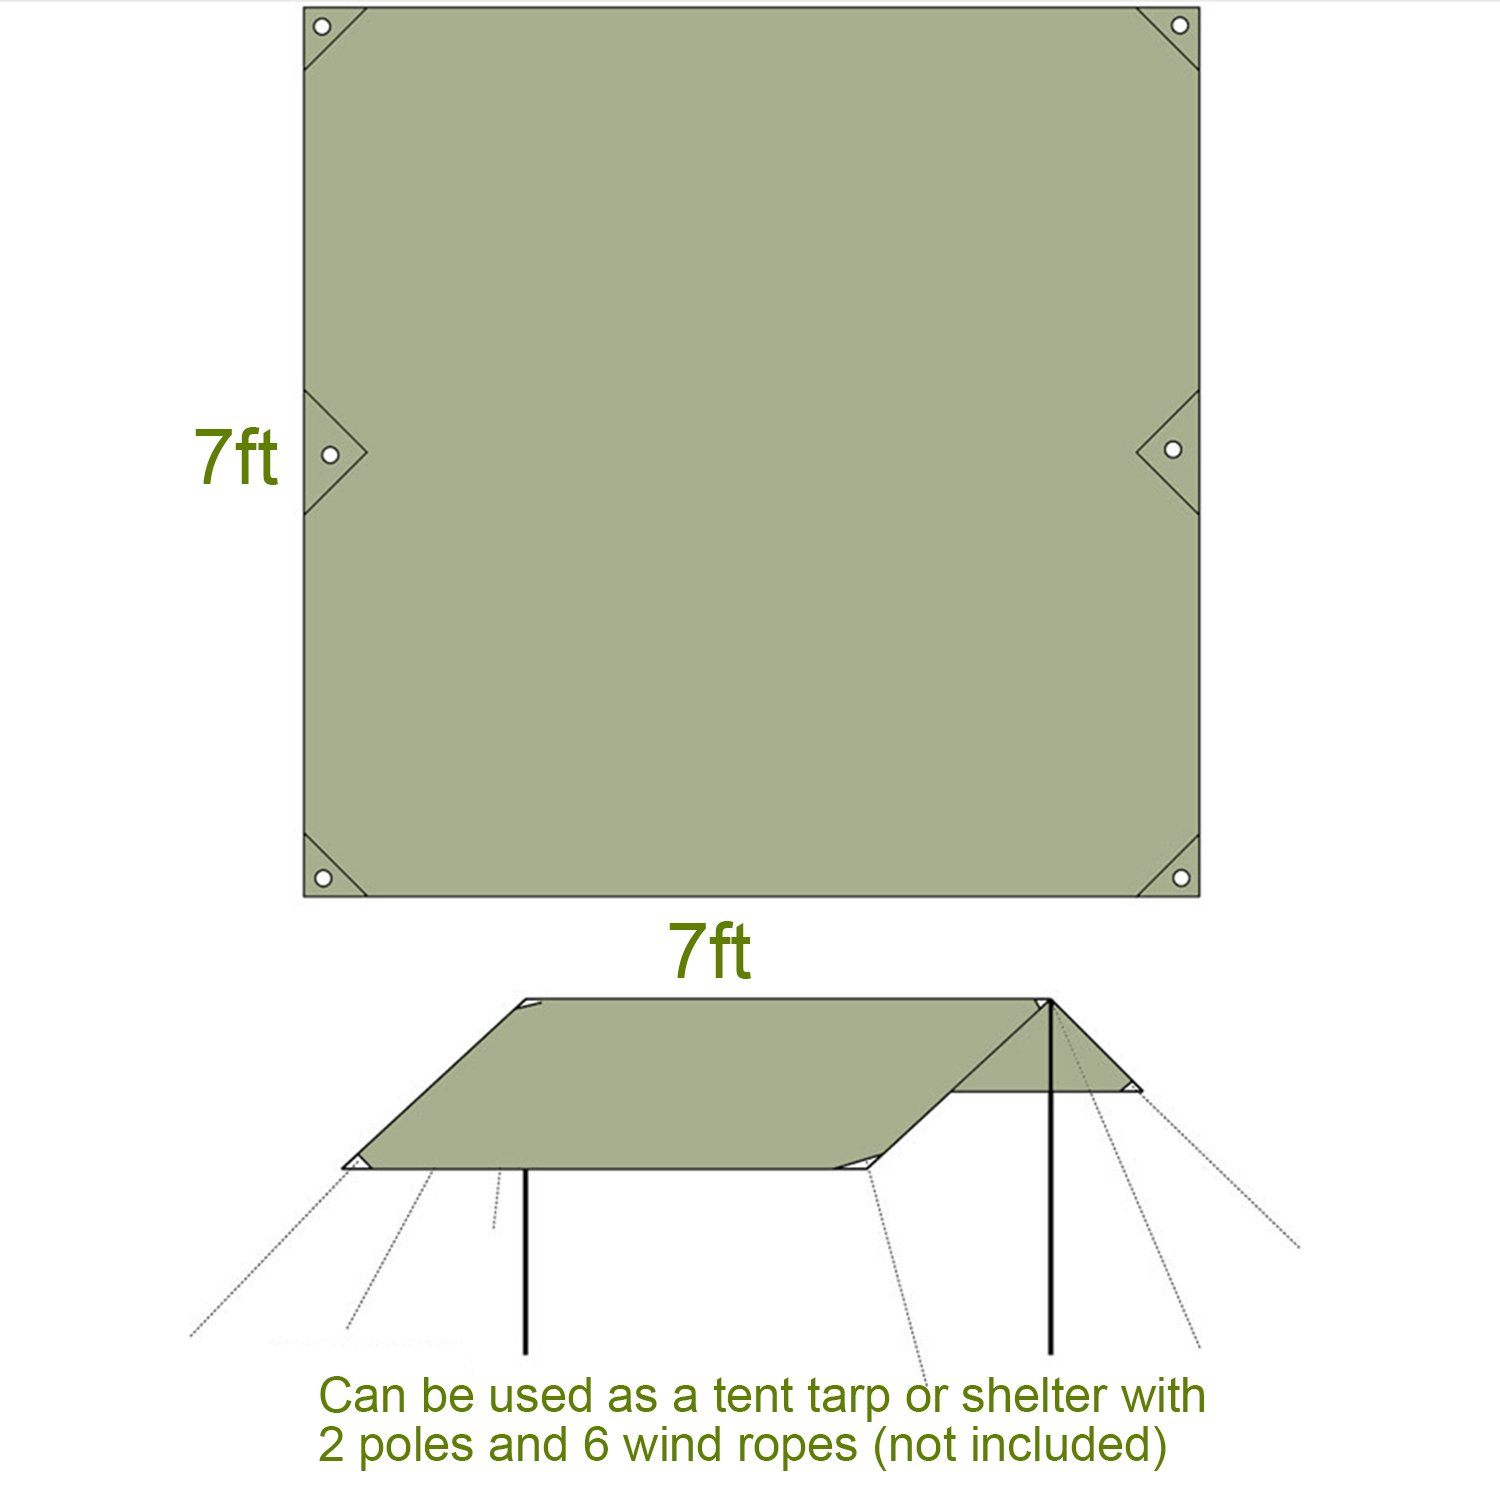 Vinqliq Outdoor Multipurpose Tent Tarp Groundsheet Footprint Camping Shelter Blanket Canopy Cover Thickened Oxford Fabric Lightweight and Waterproof 7x7 ft // 7x5 ft